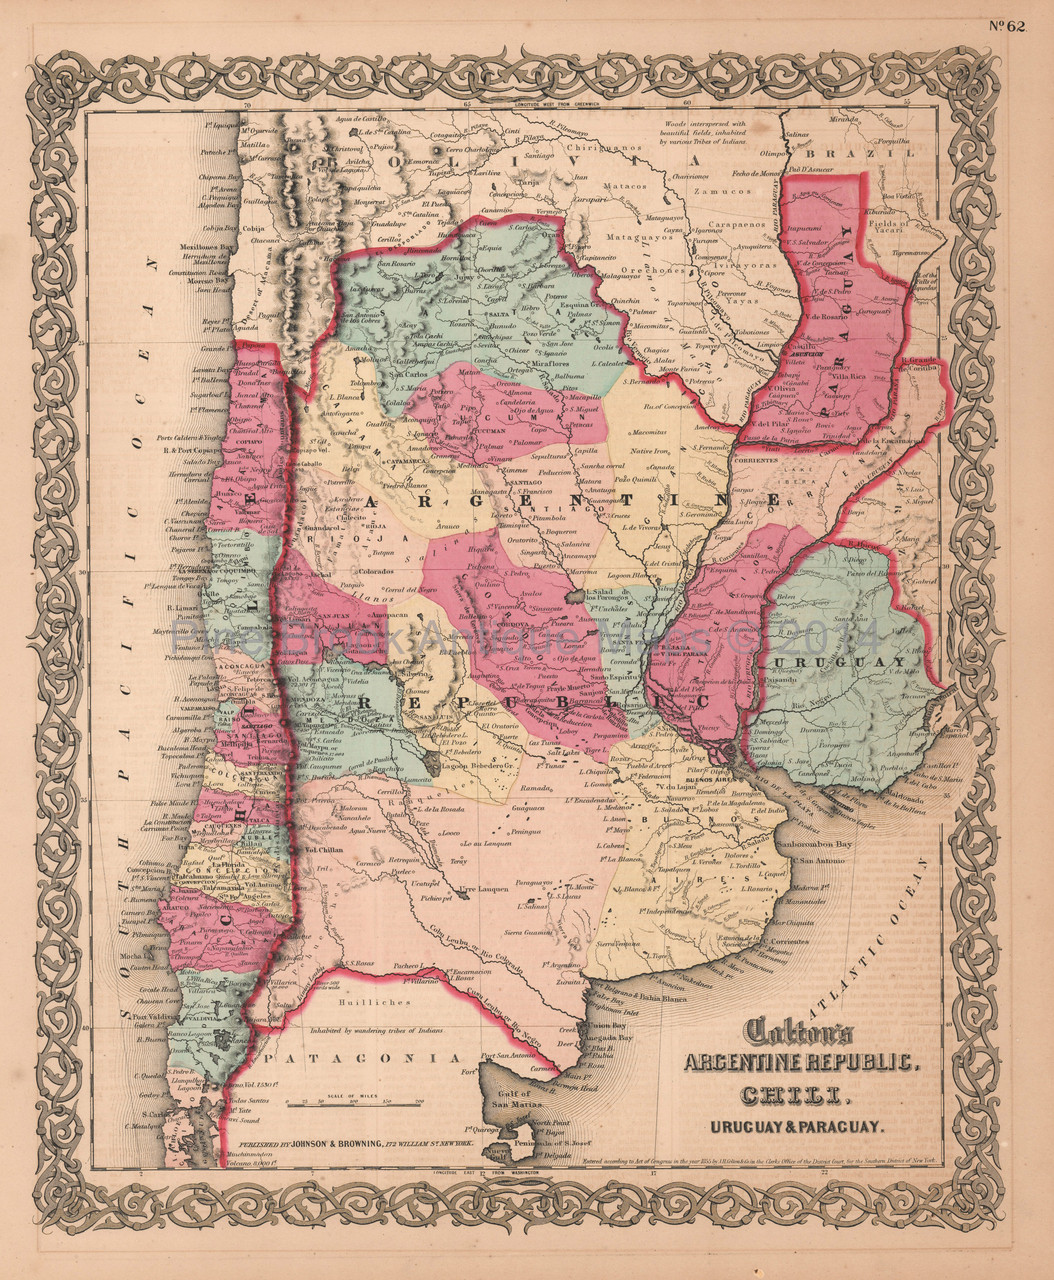 Argentina Chili Paraguay Antique Map Colton 1859 - Pine Brook ... on